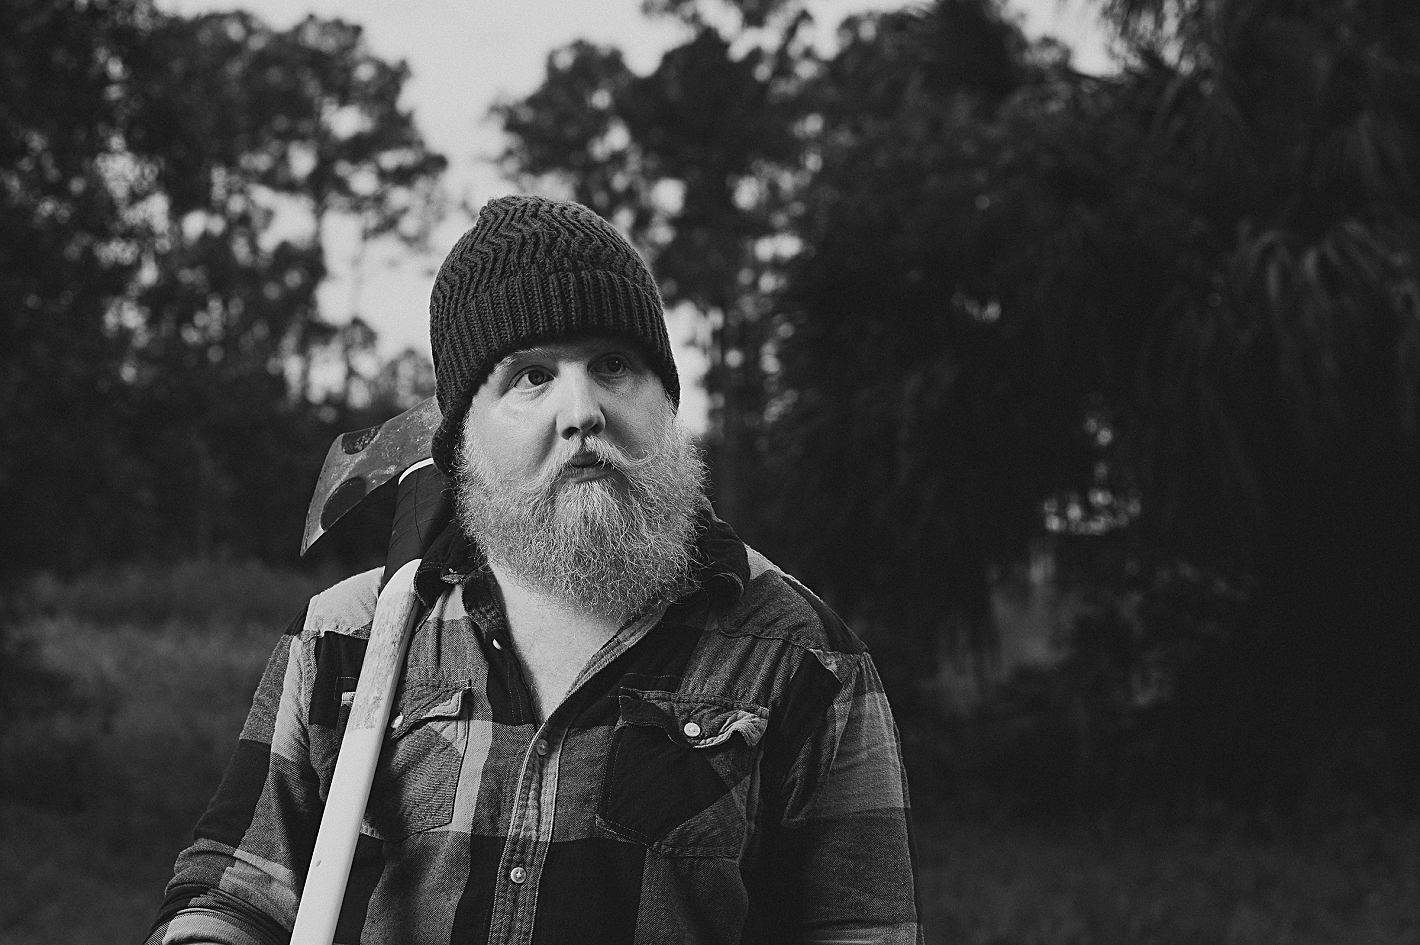 portrait photographers in florida, men with beards, lumberjack, axemen